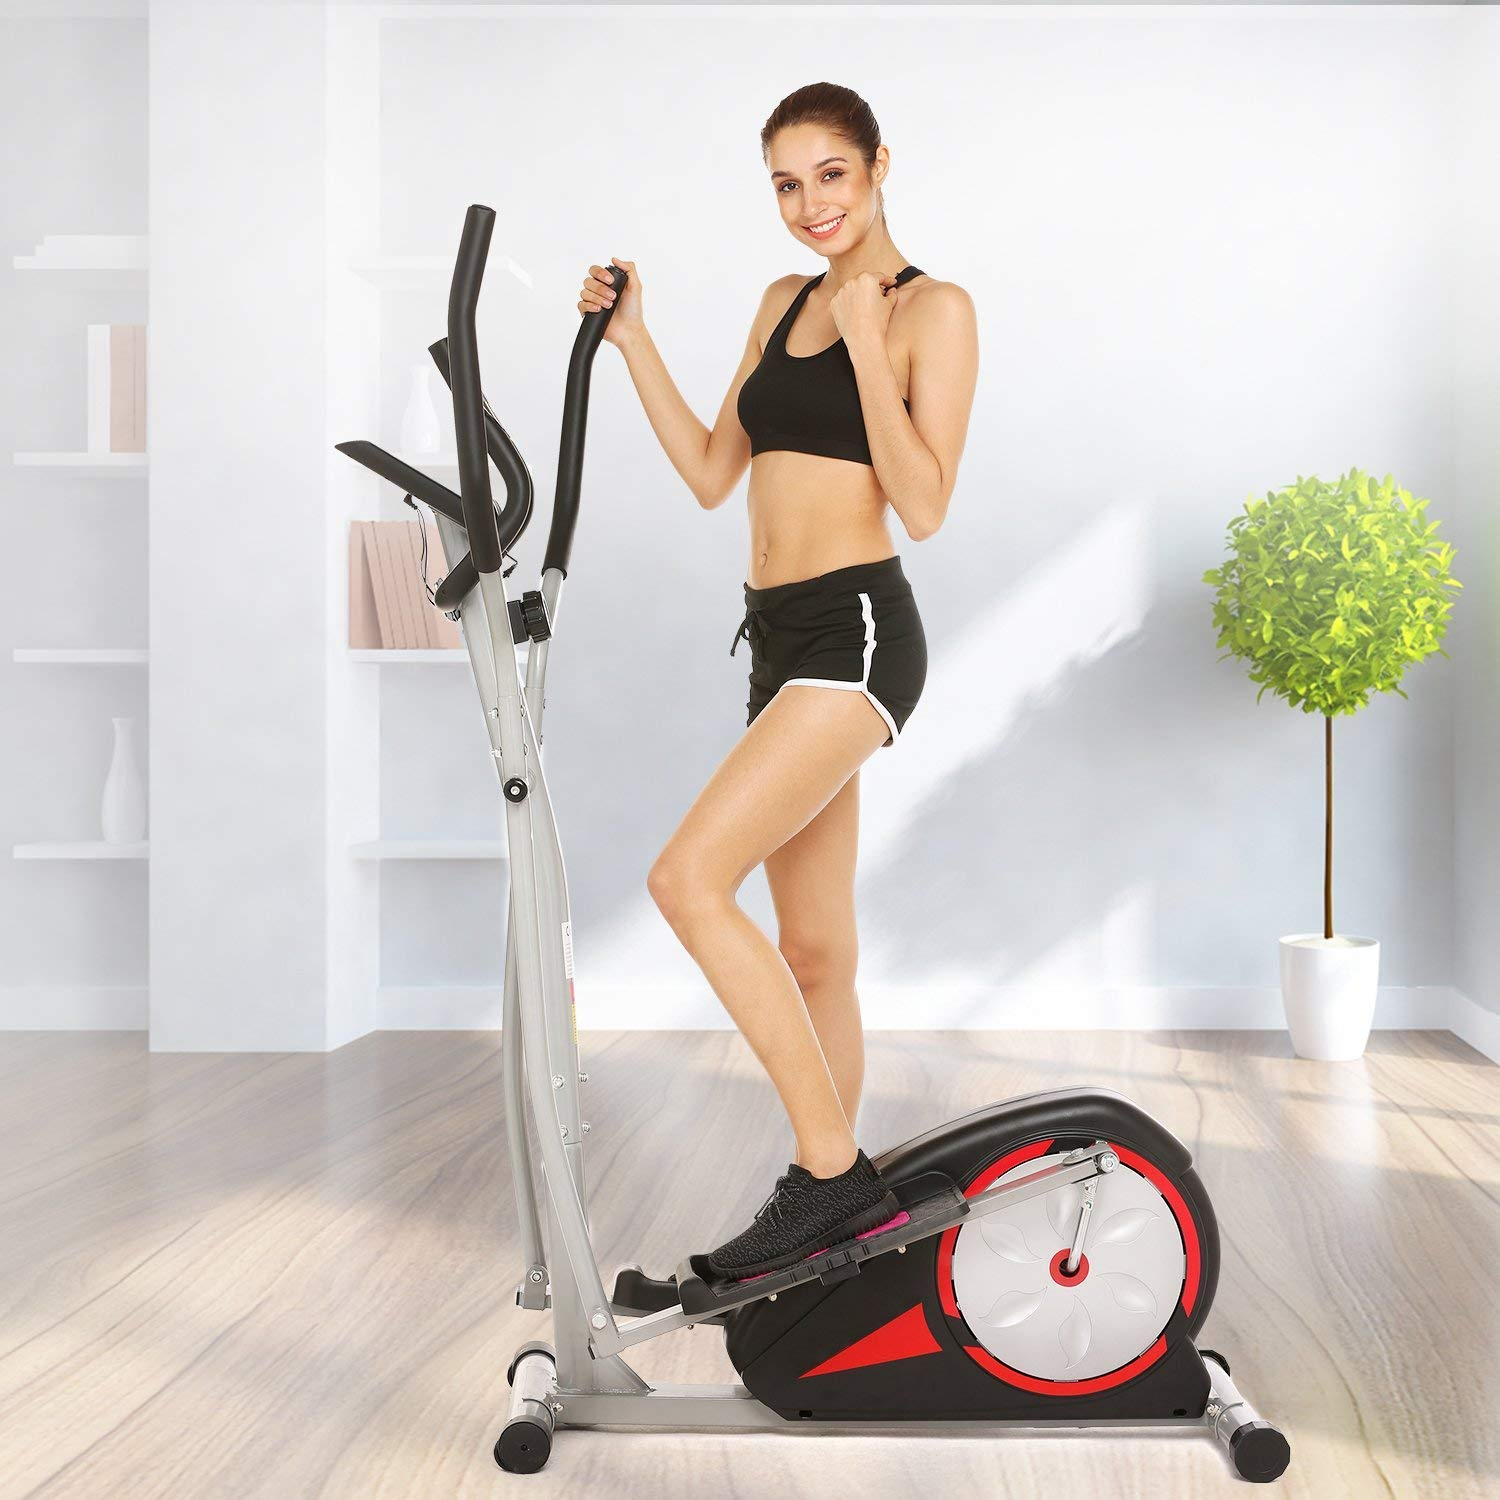 Kemanner Elliptical Machine Trainer for Home Gym Fitness Workout,Smooth Quiet Elliptical Trainer Magnetic Control with LCD Monitor and Pulse Rate Grips(Black)